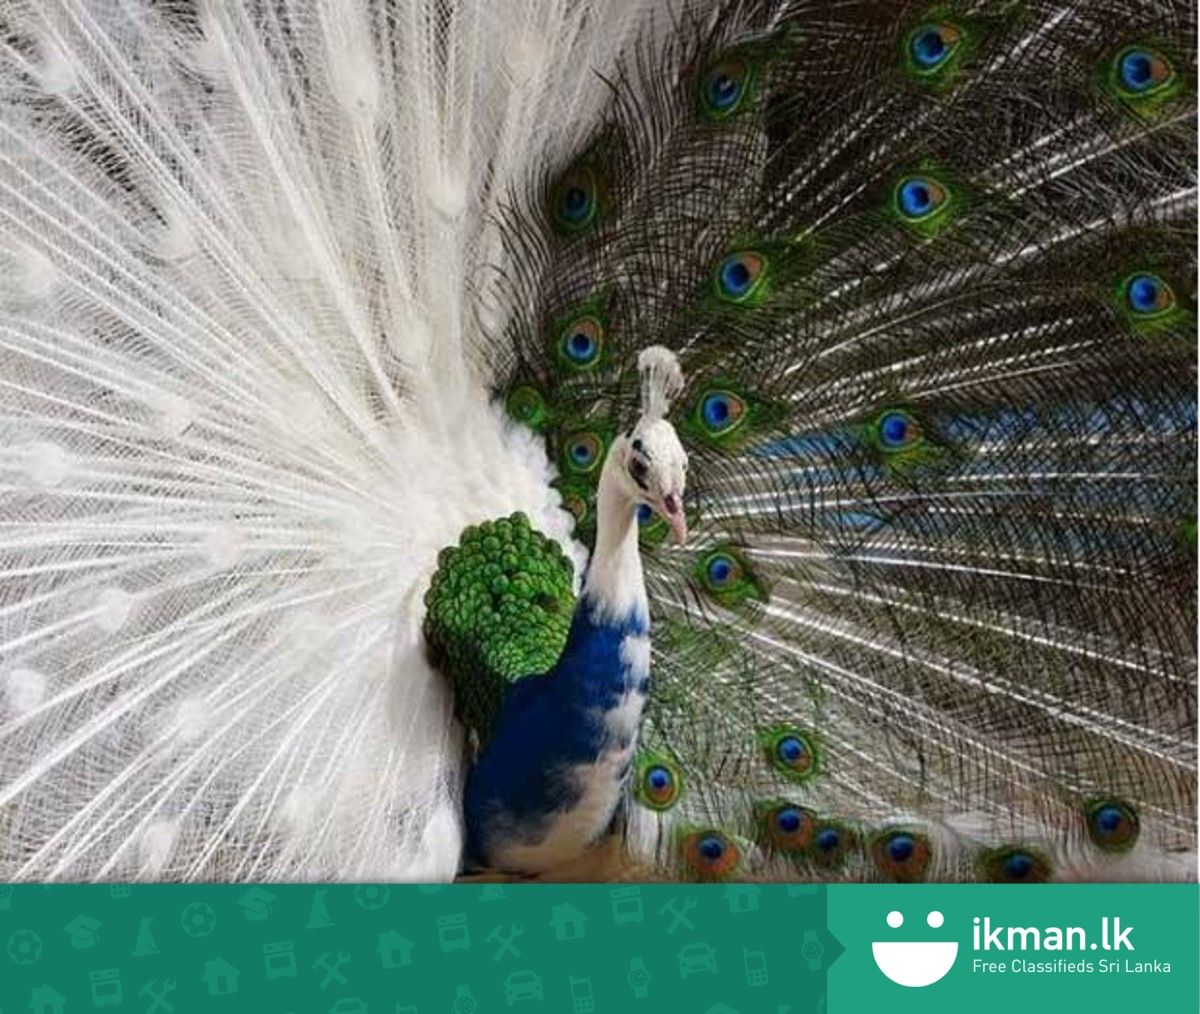 Ikman lk land for sale - Want To Have A Bird As A Pet Read This Guide Http